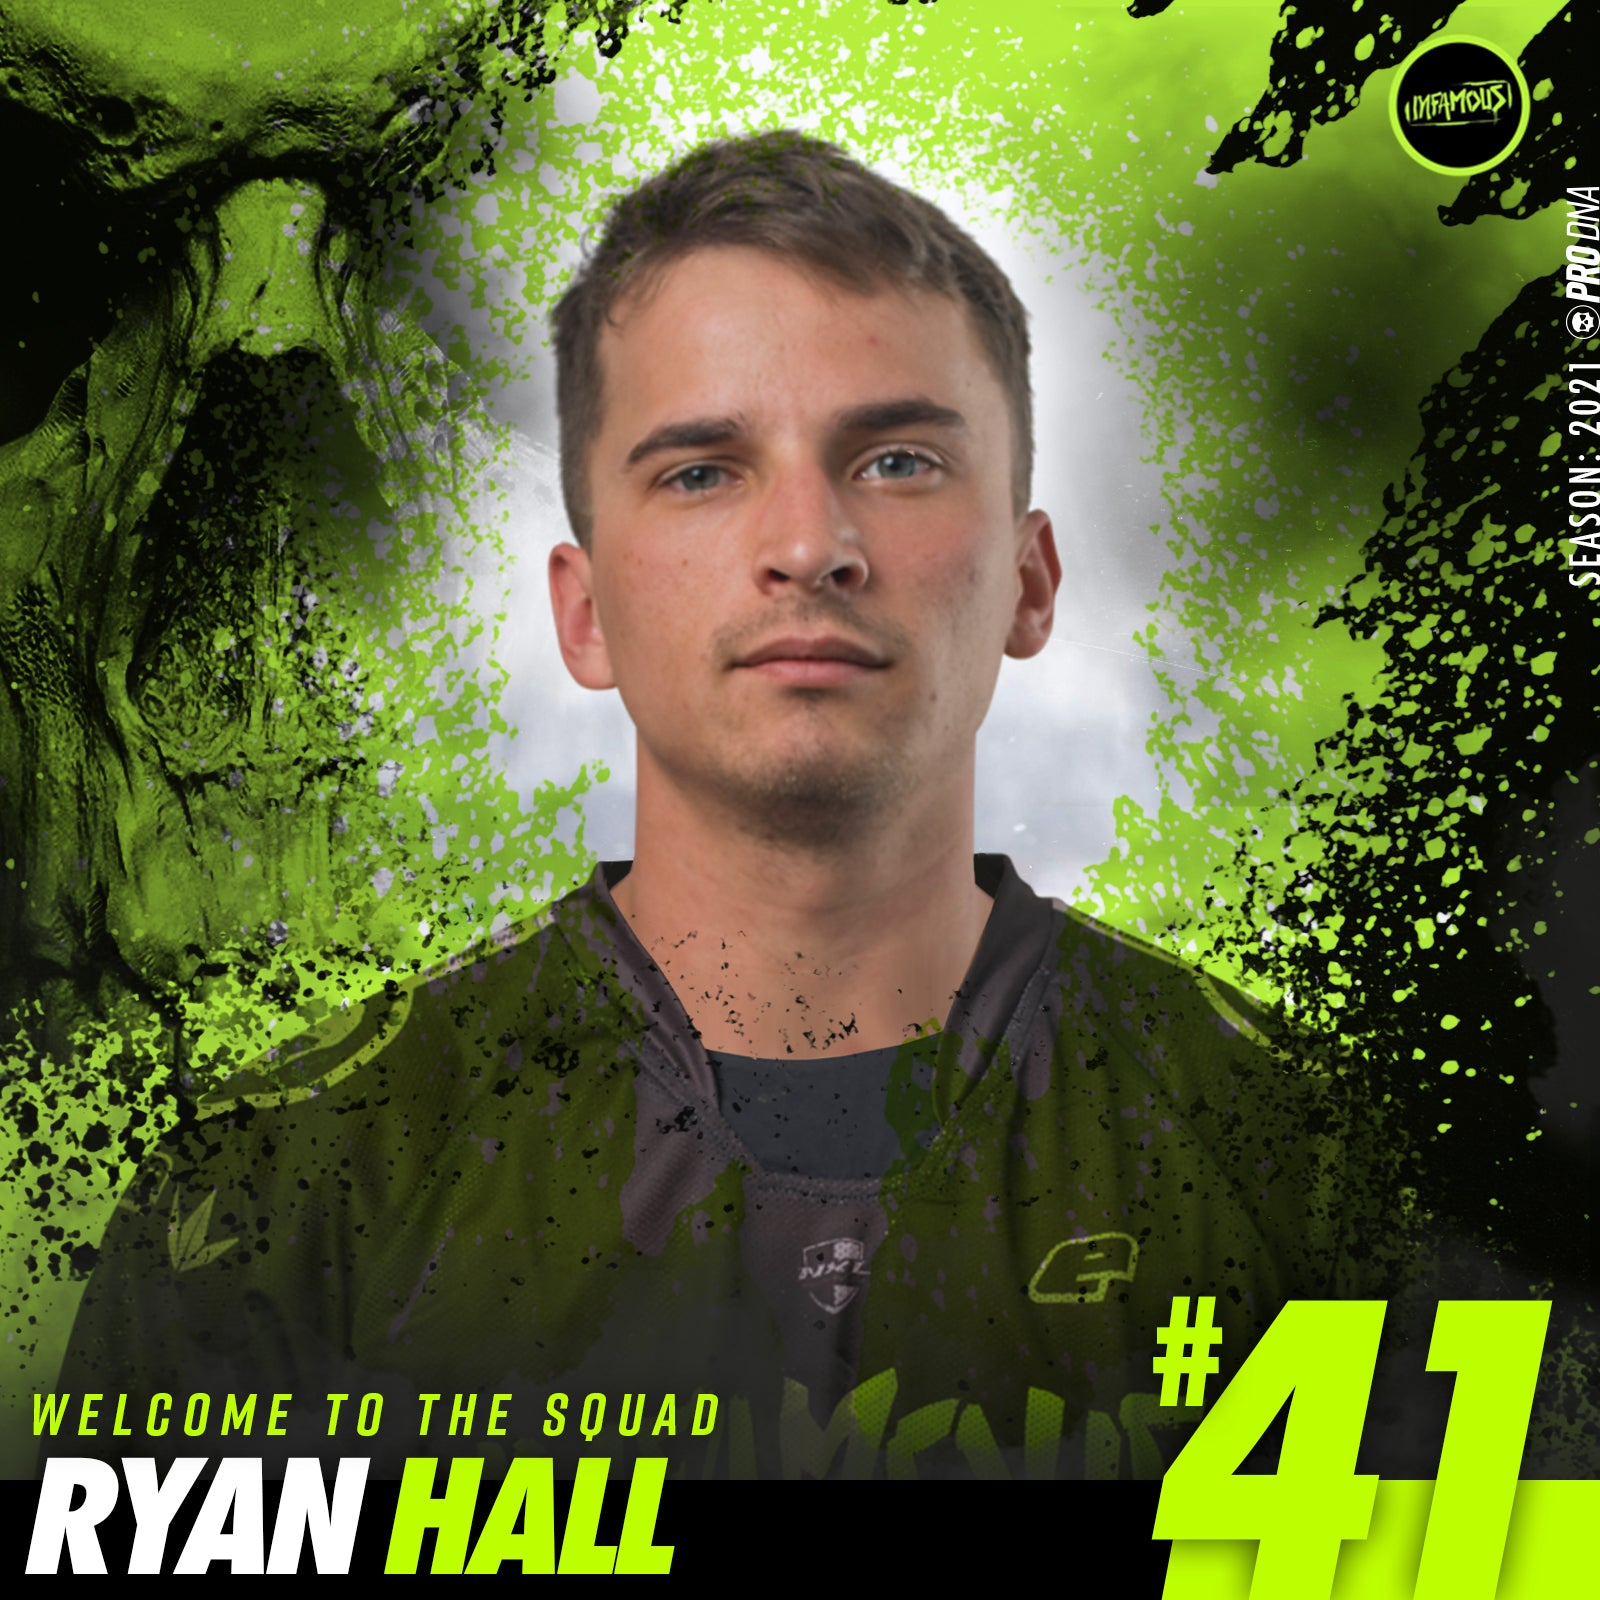 Ryan Hall Joins Infamous!